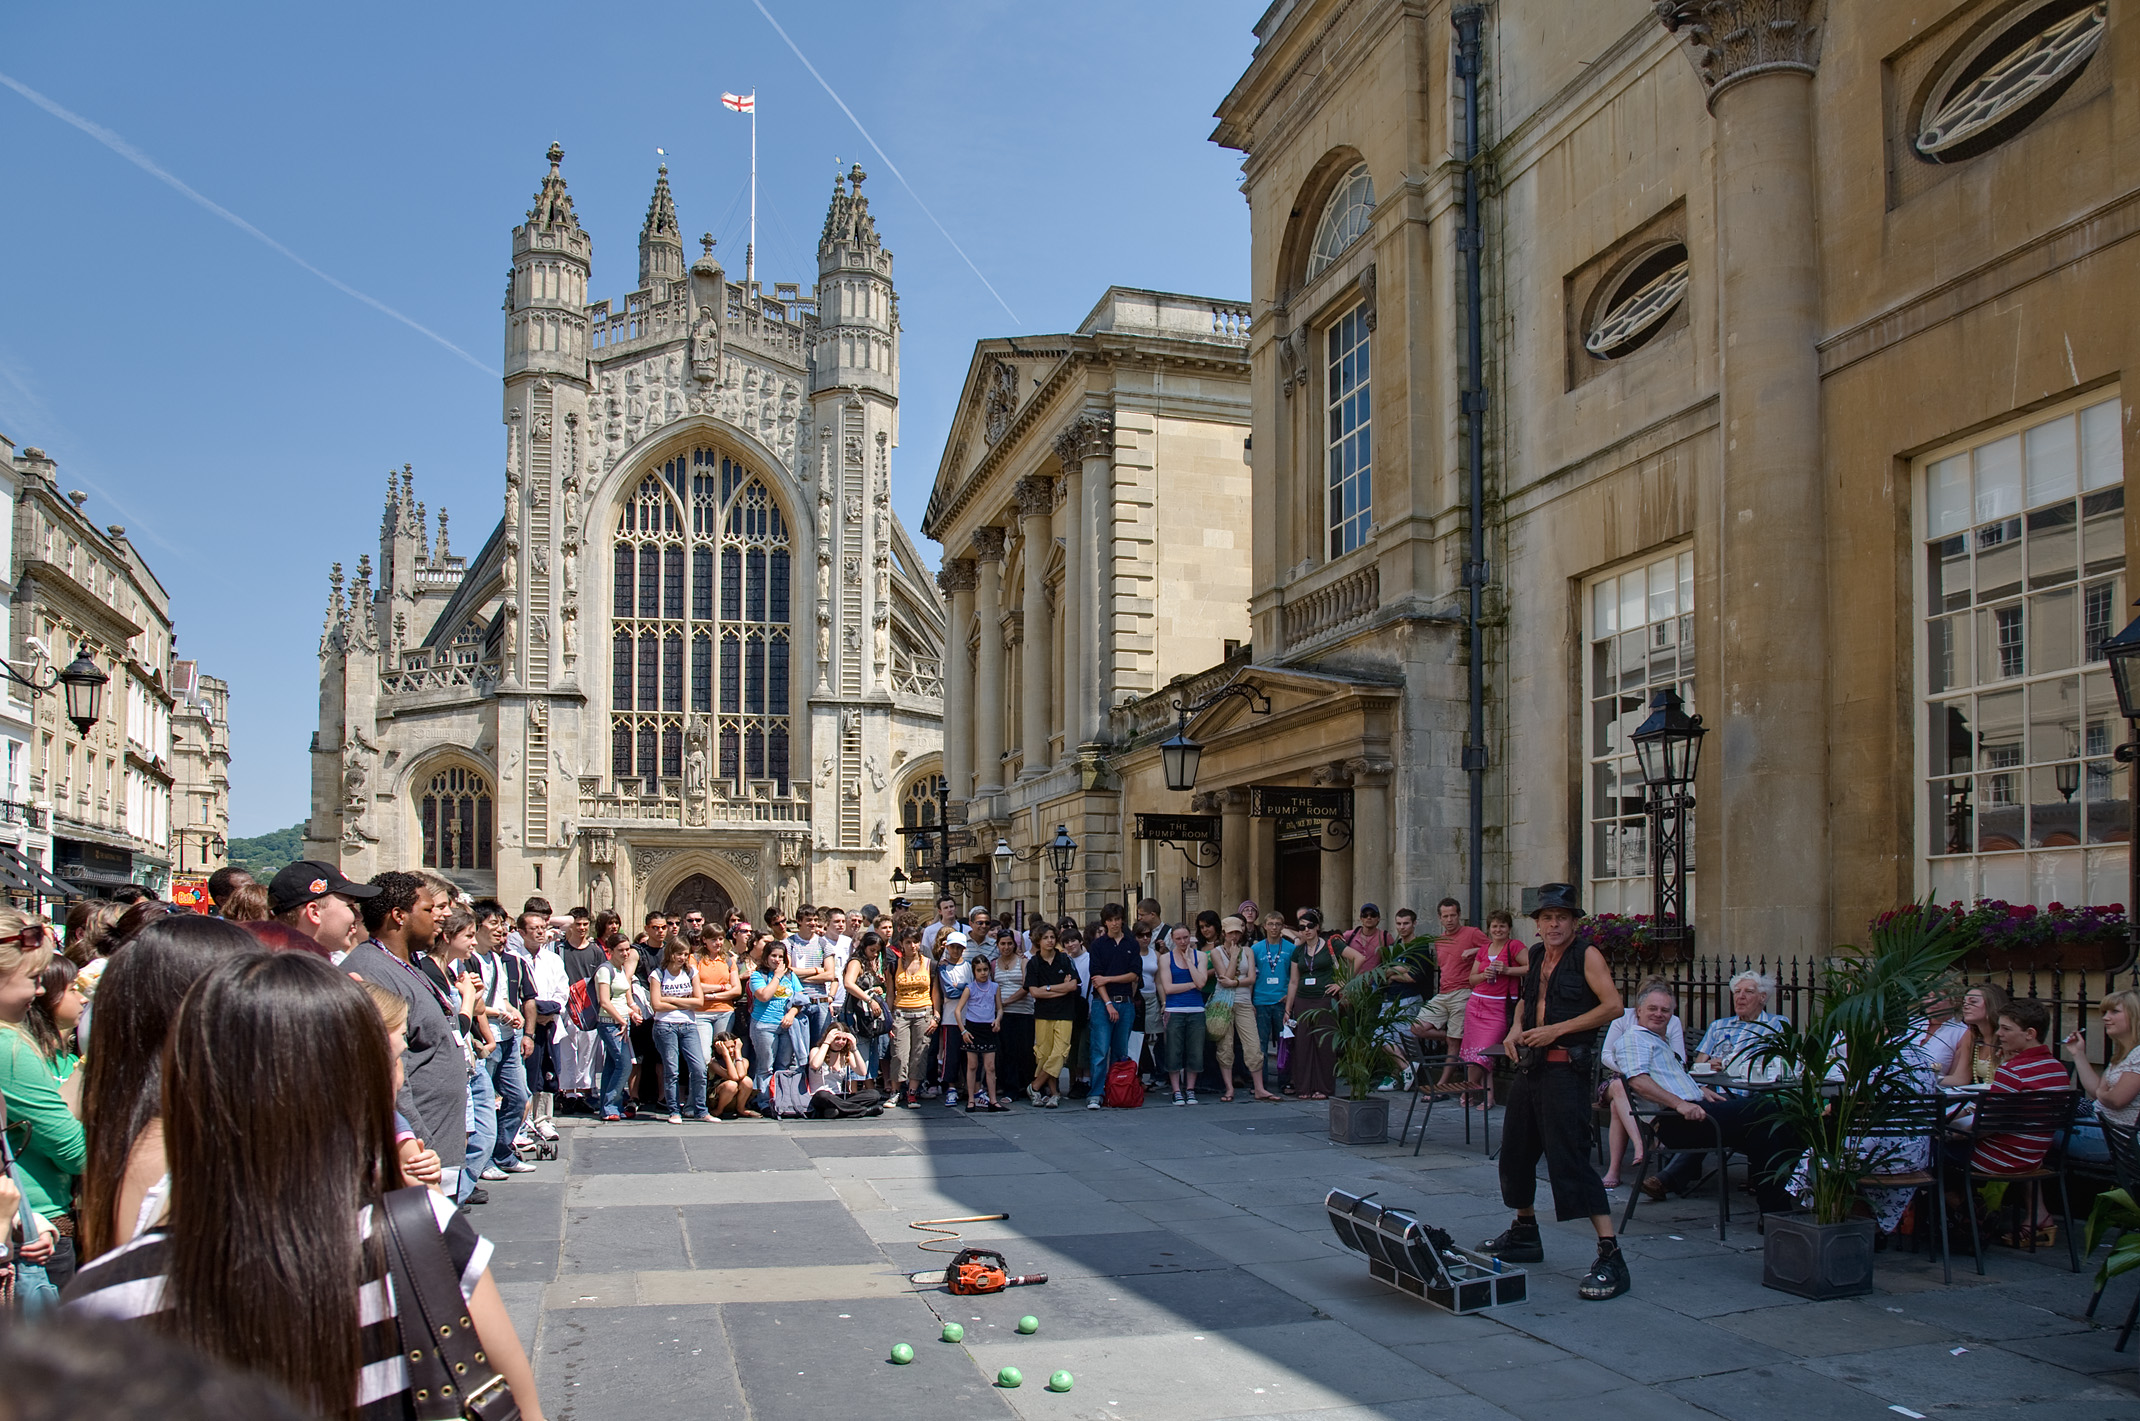 Top UK Summer Destinations: Bath Abbey and Busker